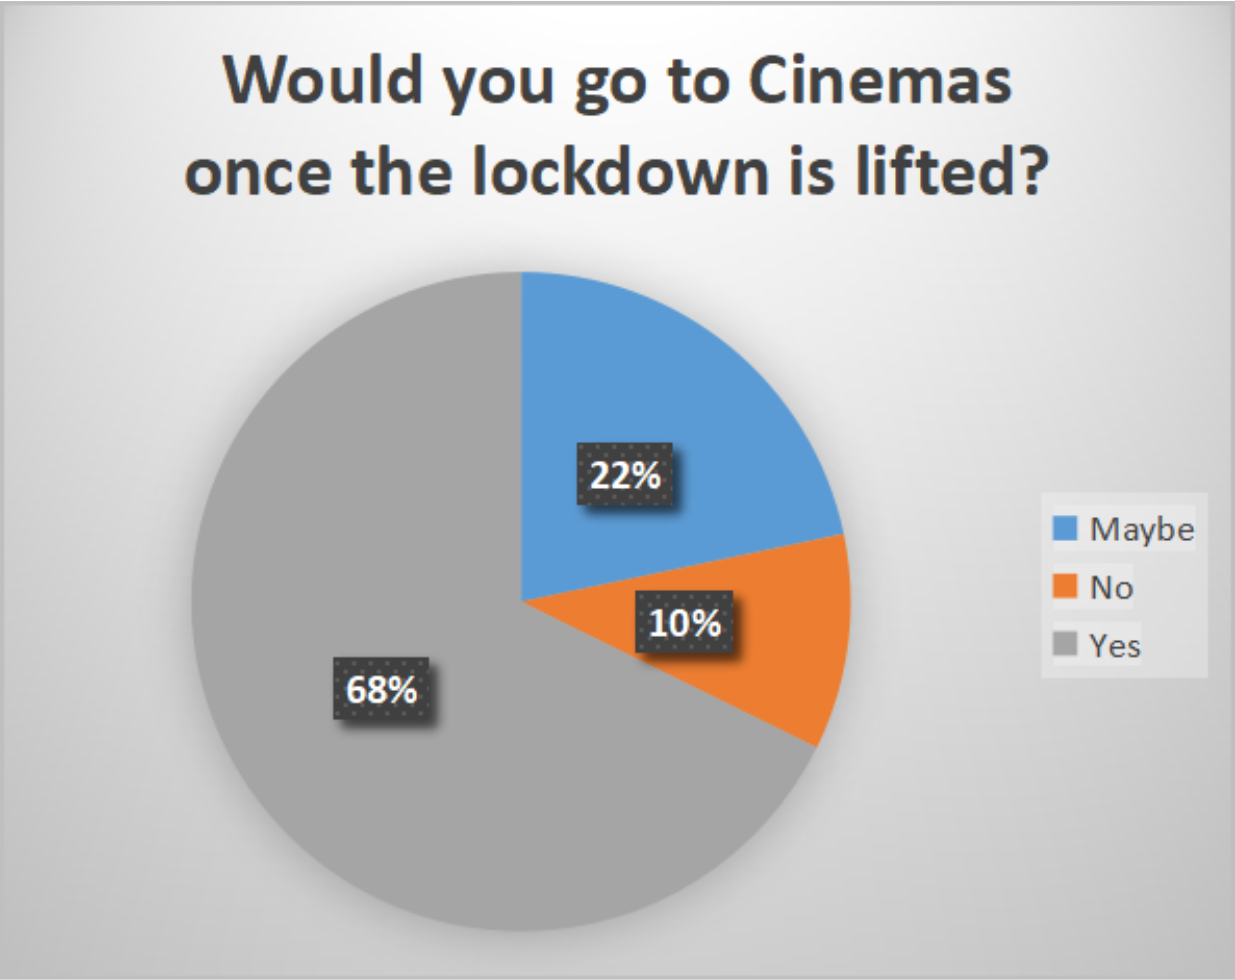 Would you go to Cinemas once the lockdown is lifted